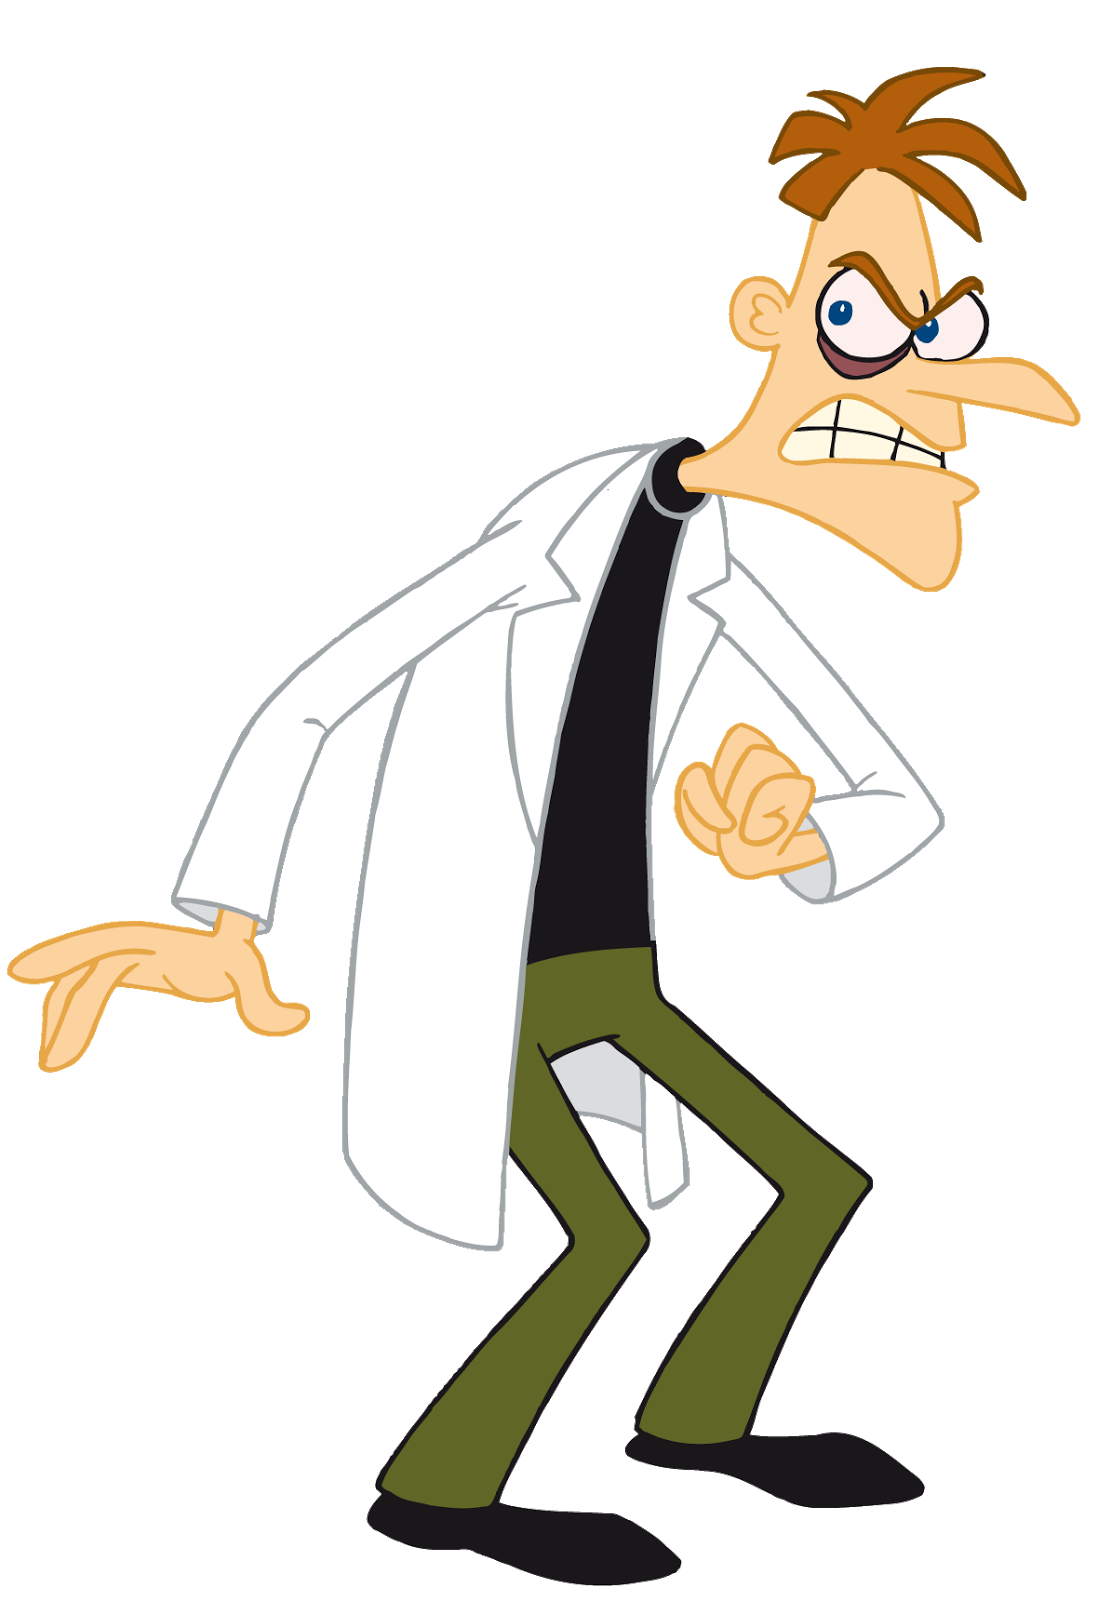 Cartoon Characters Phineas And Ferb Png Phineas And Ferb Drawing Cartoon Characters Cartoon Characters